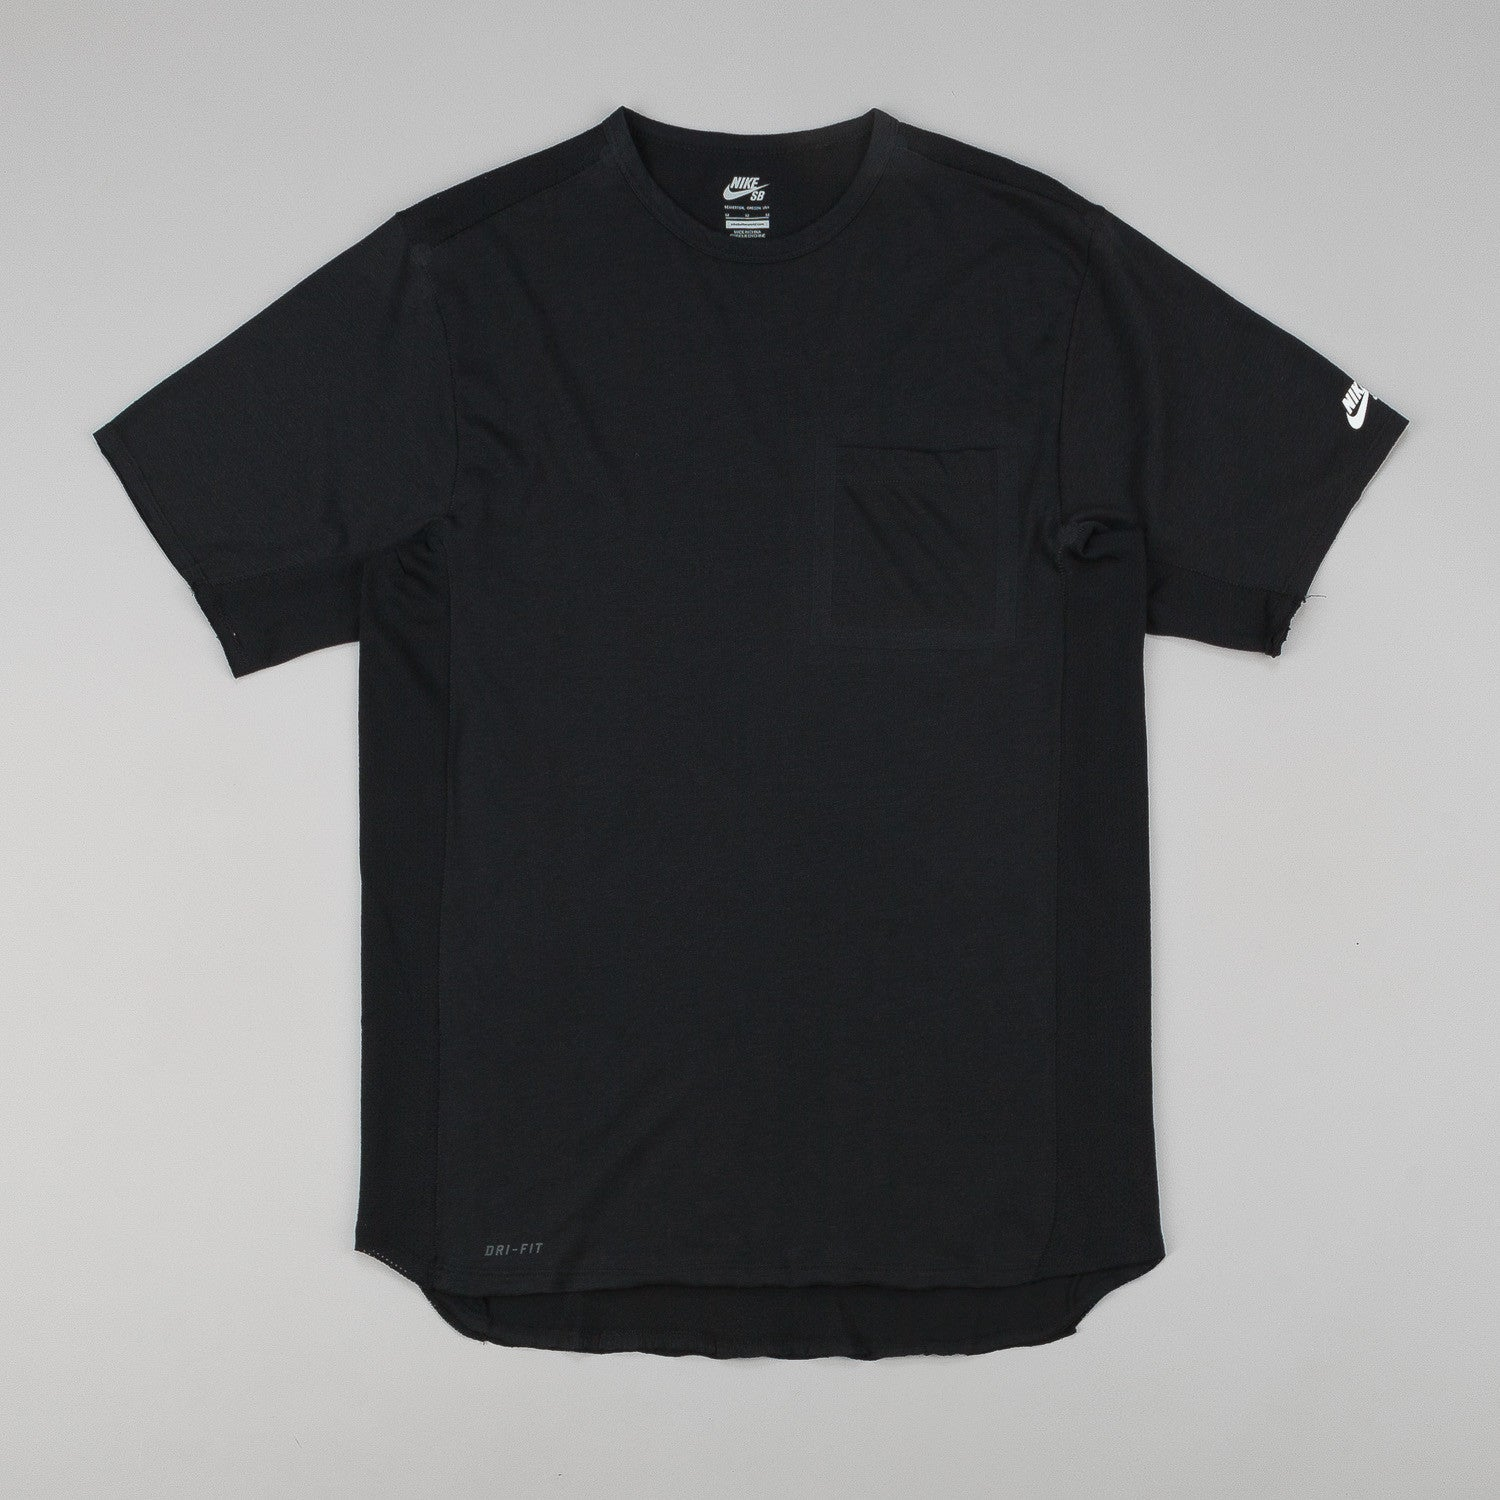 Nike SB Skyline DFC Short Sleeve Pocket T-Shirt